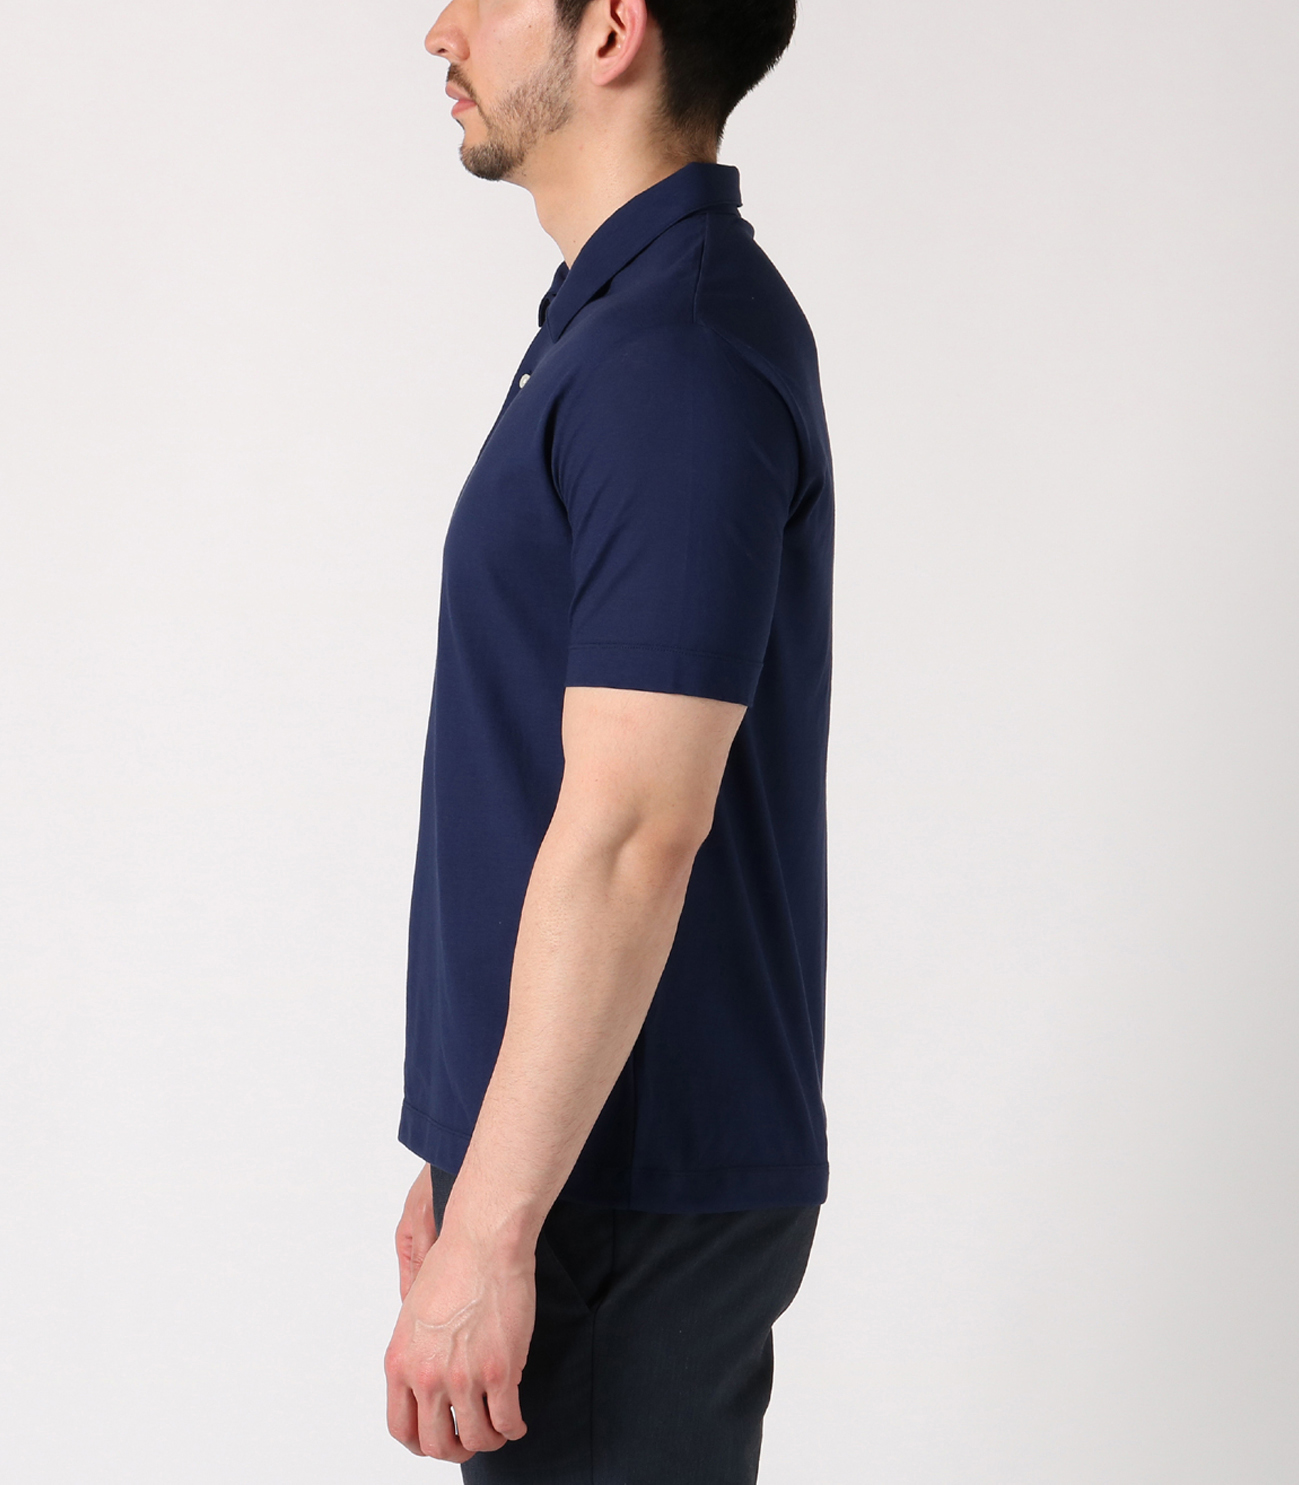 iced cotton s/s polo 詳細画像 ivory 3